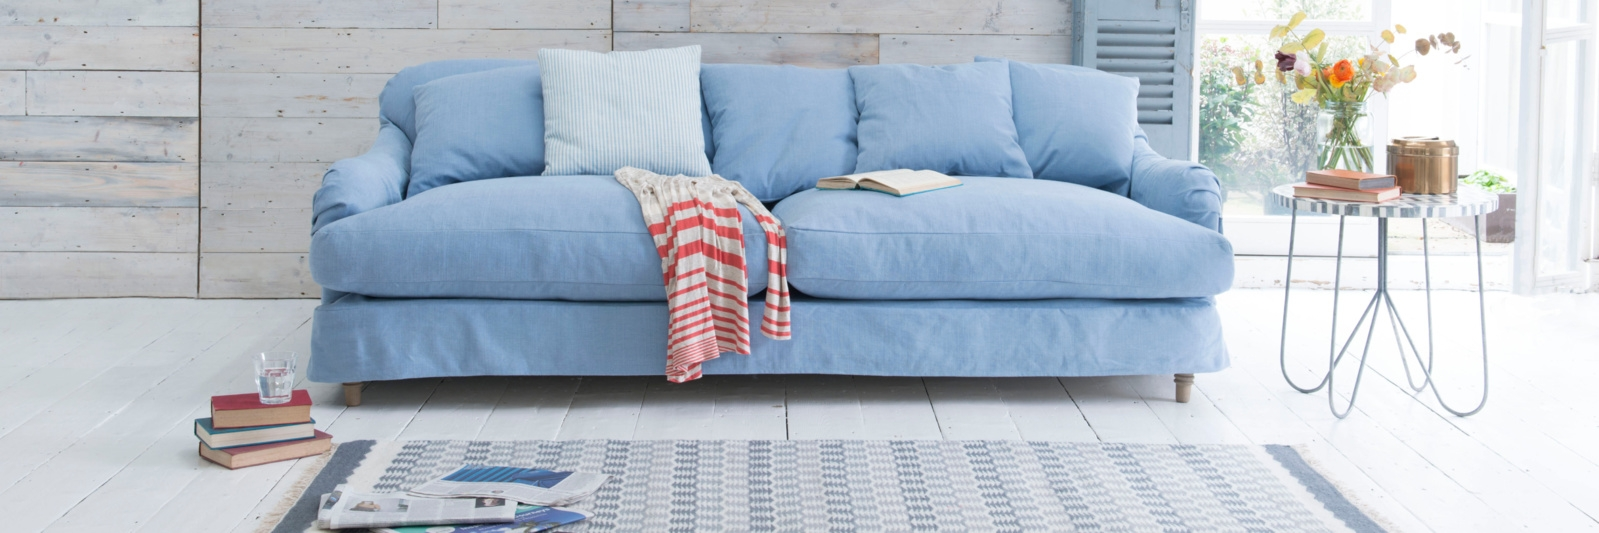 Featured Image of Sofas With Removable Covers